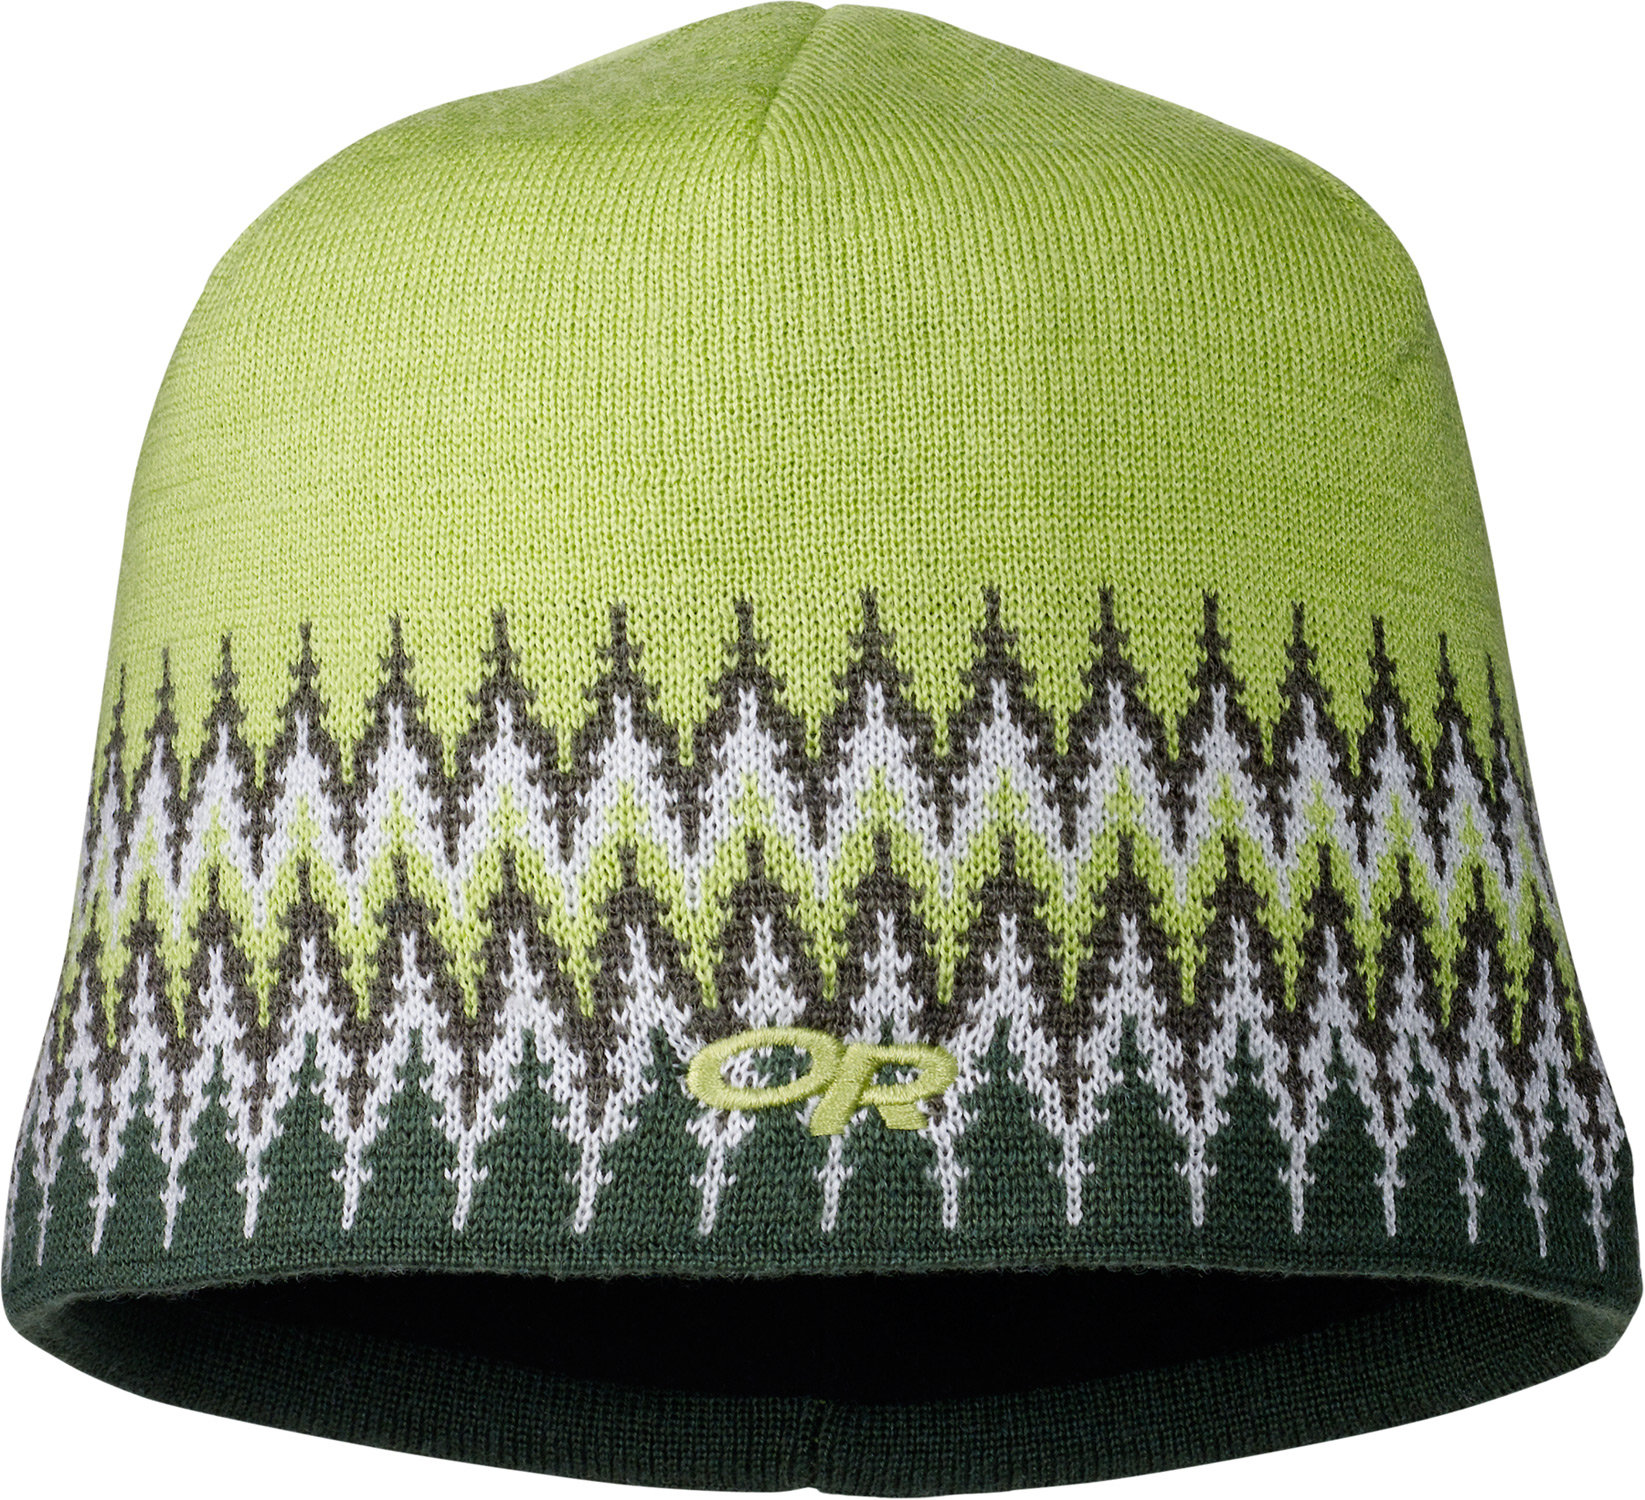 Your sure to stay warm this season with this fleece lined winter accessory. The Outdoor Research Treeline Beanie is a must have and features a cool striped graphic design.  70% acrylic/30% wool   Micro fleece lining - $12.95